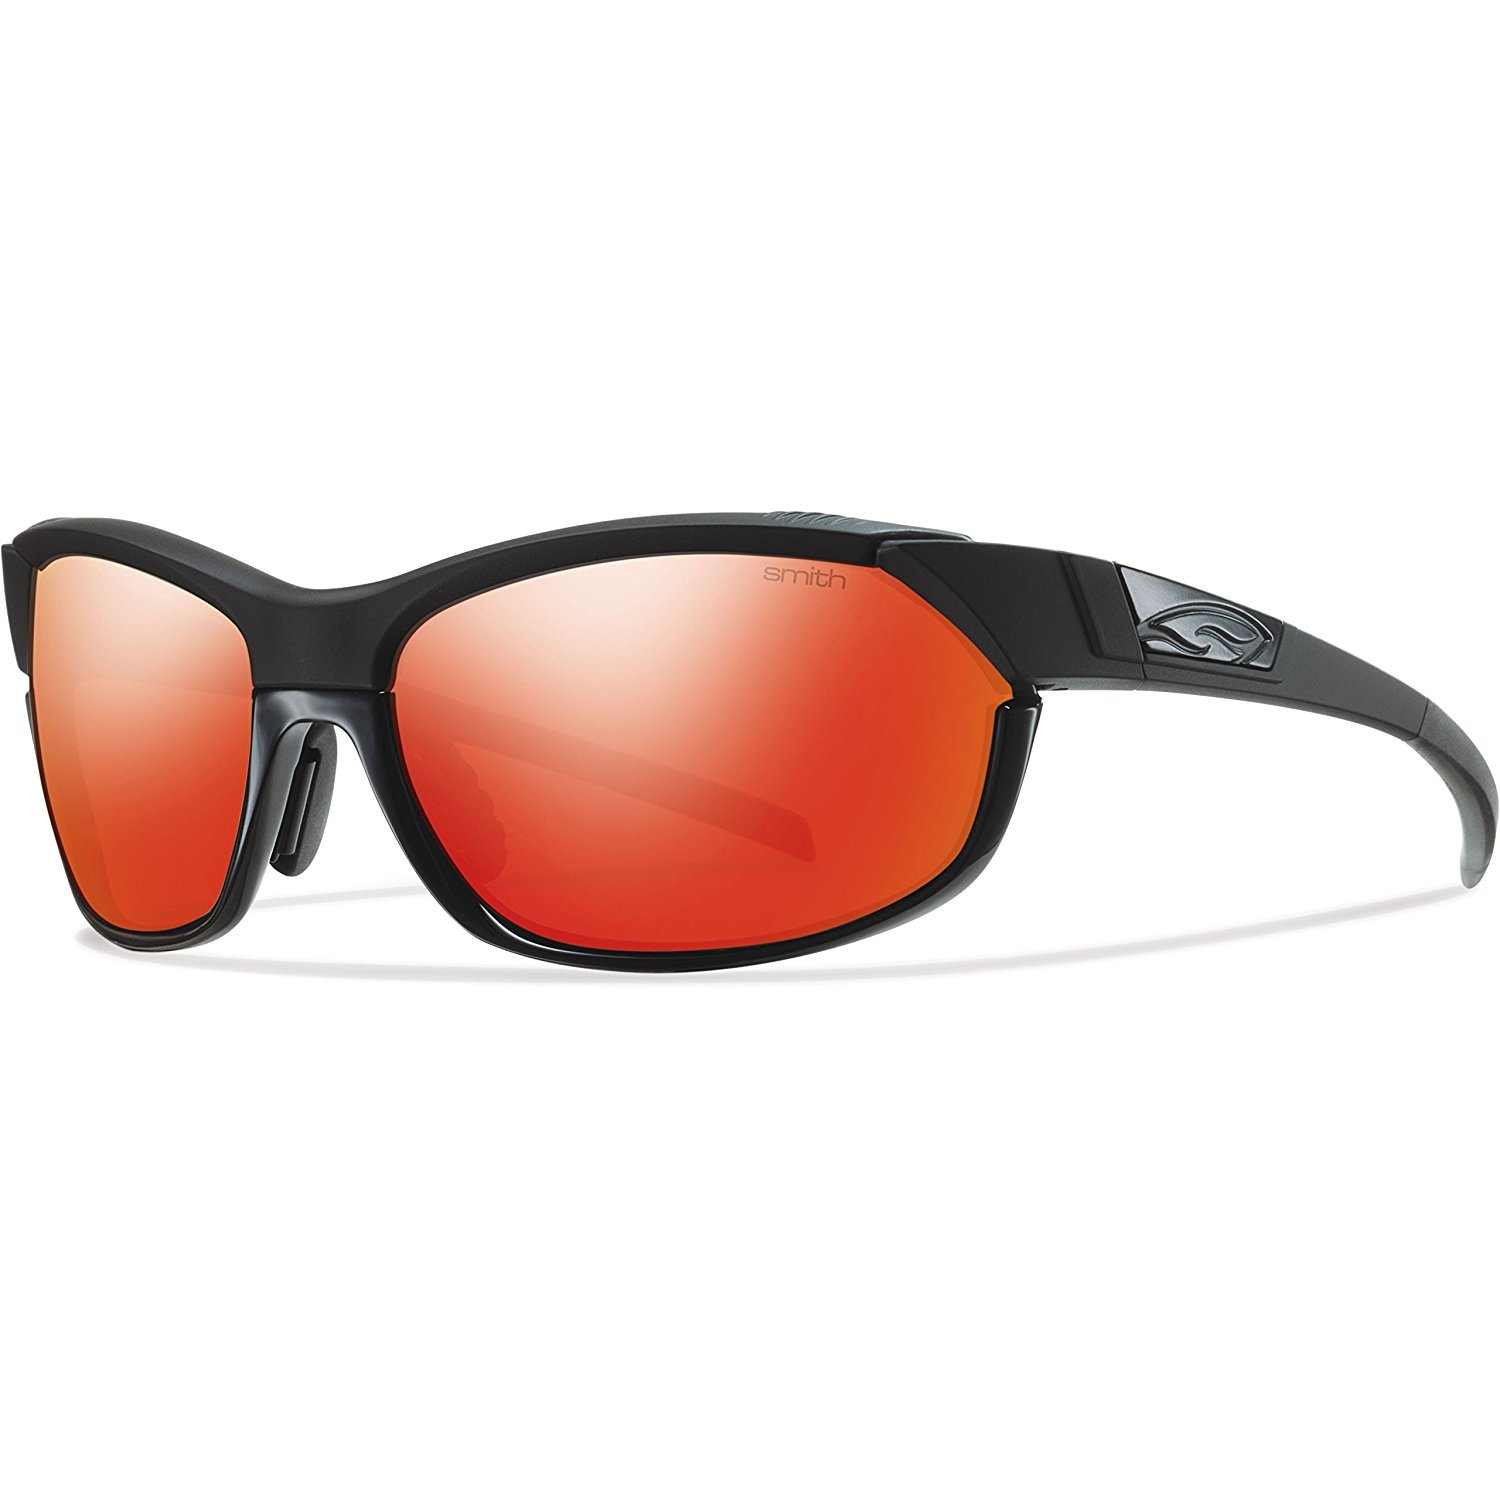 Smith Overdrive/N Zn D28 61 Gafas de Sol, Unisex Adulto ...